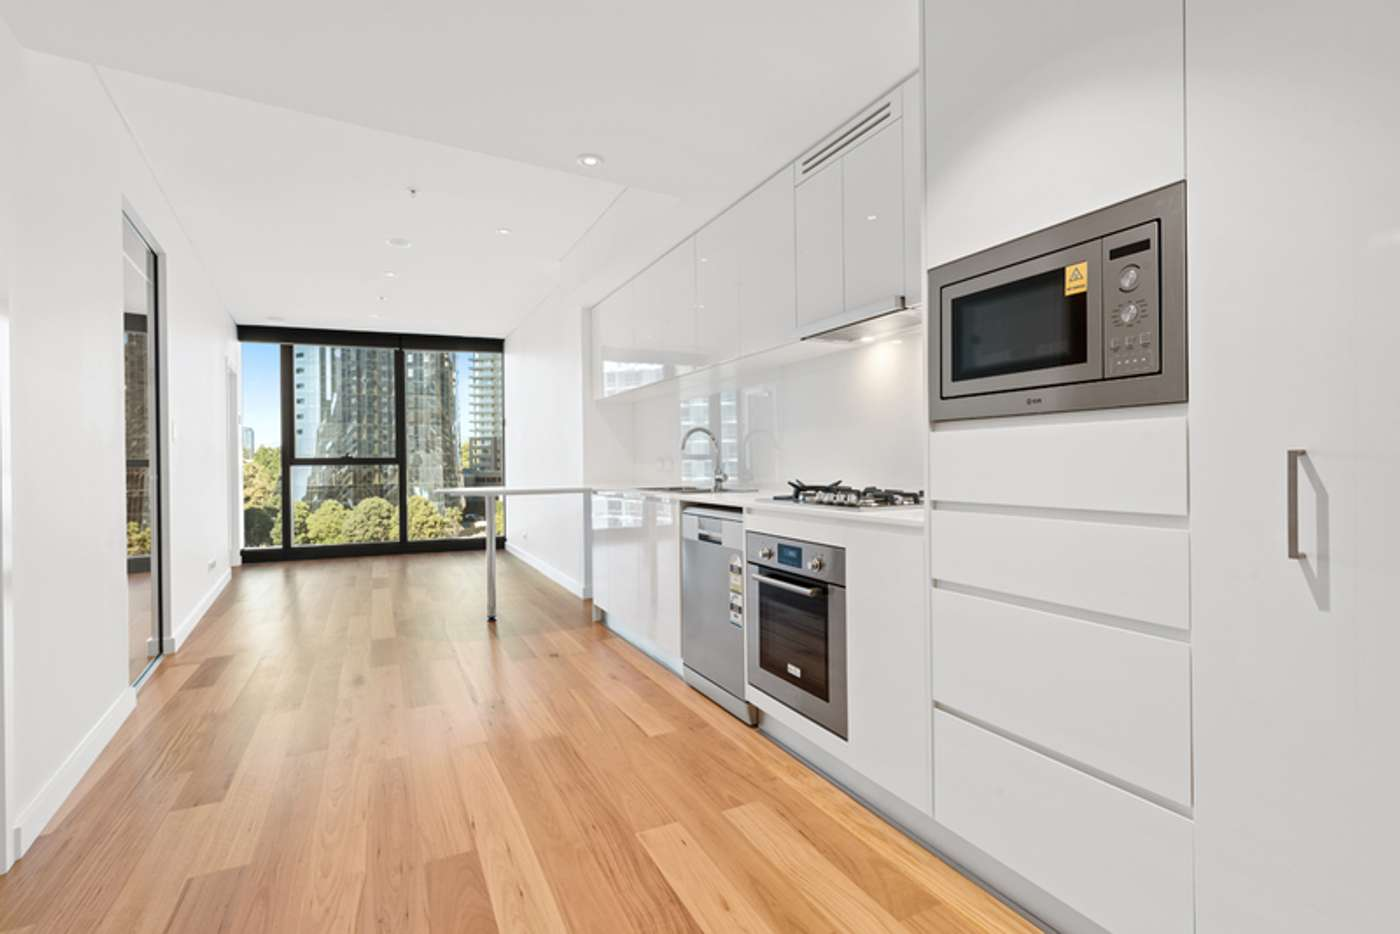 Main view of Homely unit listing, 3113/222 MARGARET STREET, Brisbane City QLD 4000